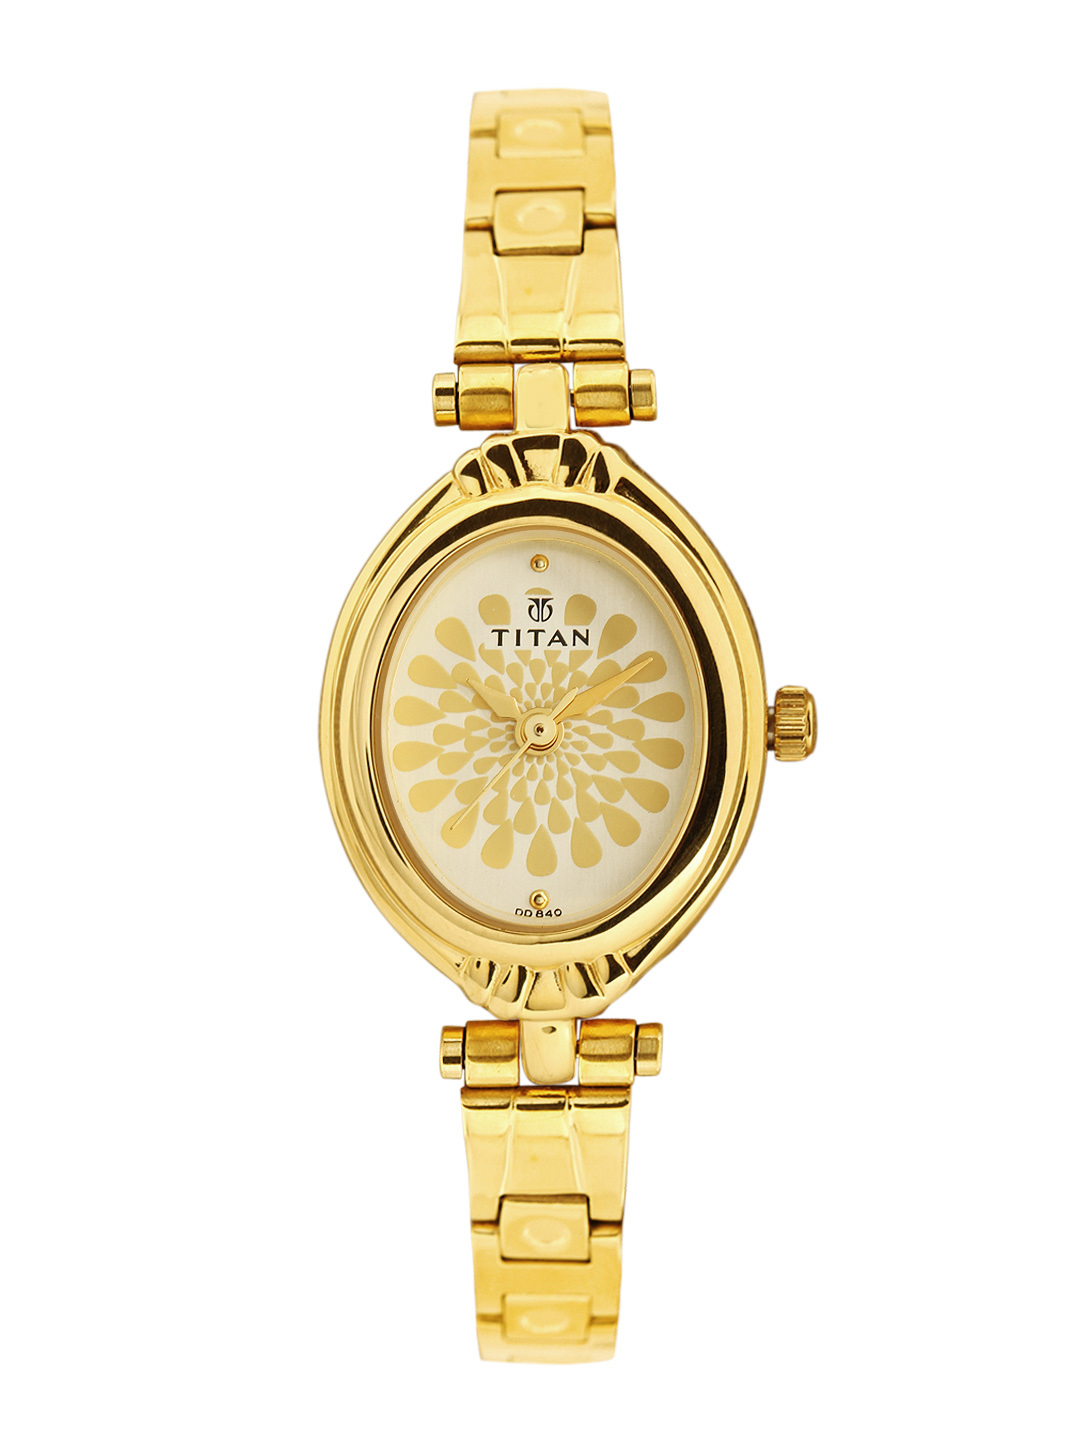 Another pretty champagne dial watch